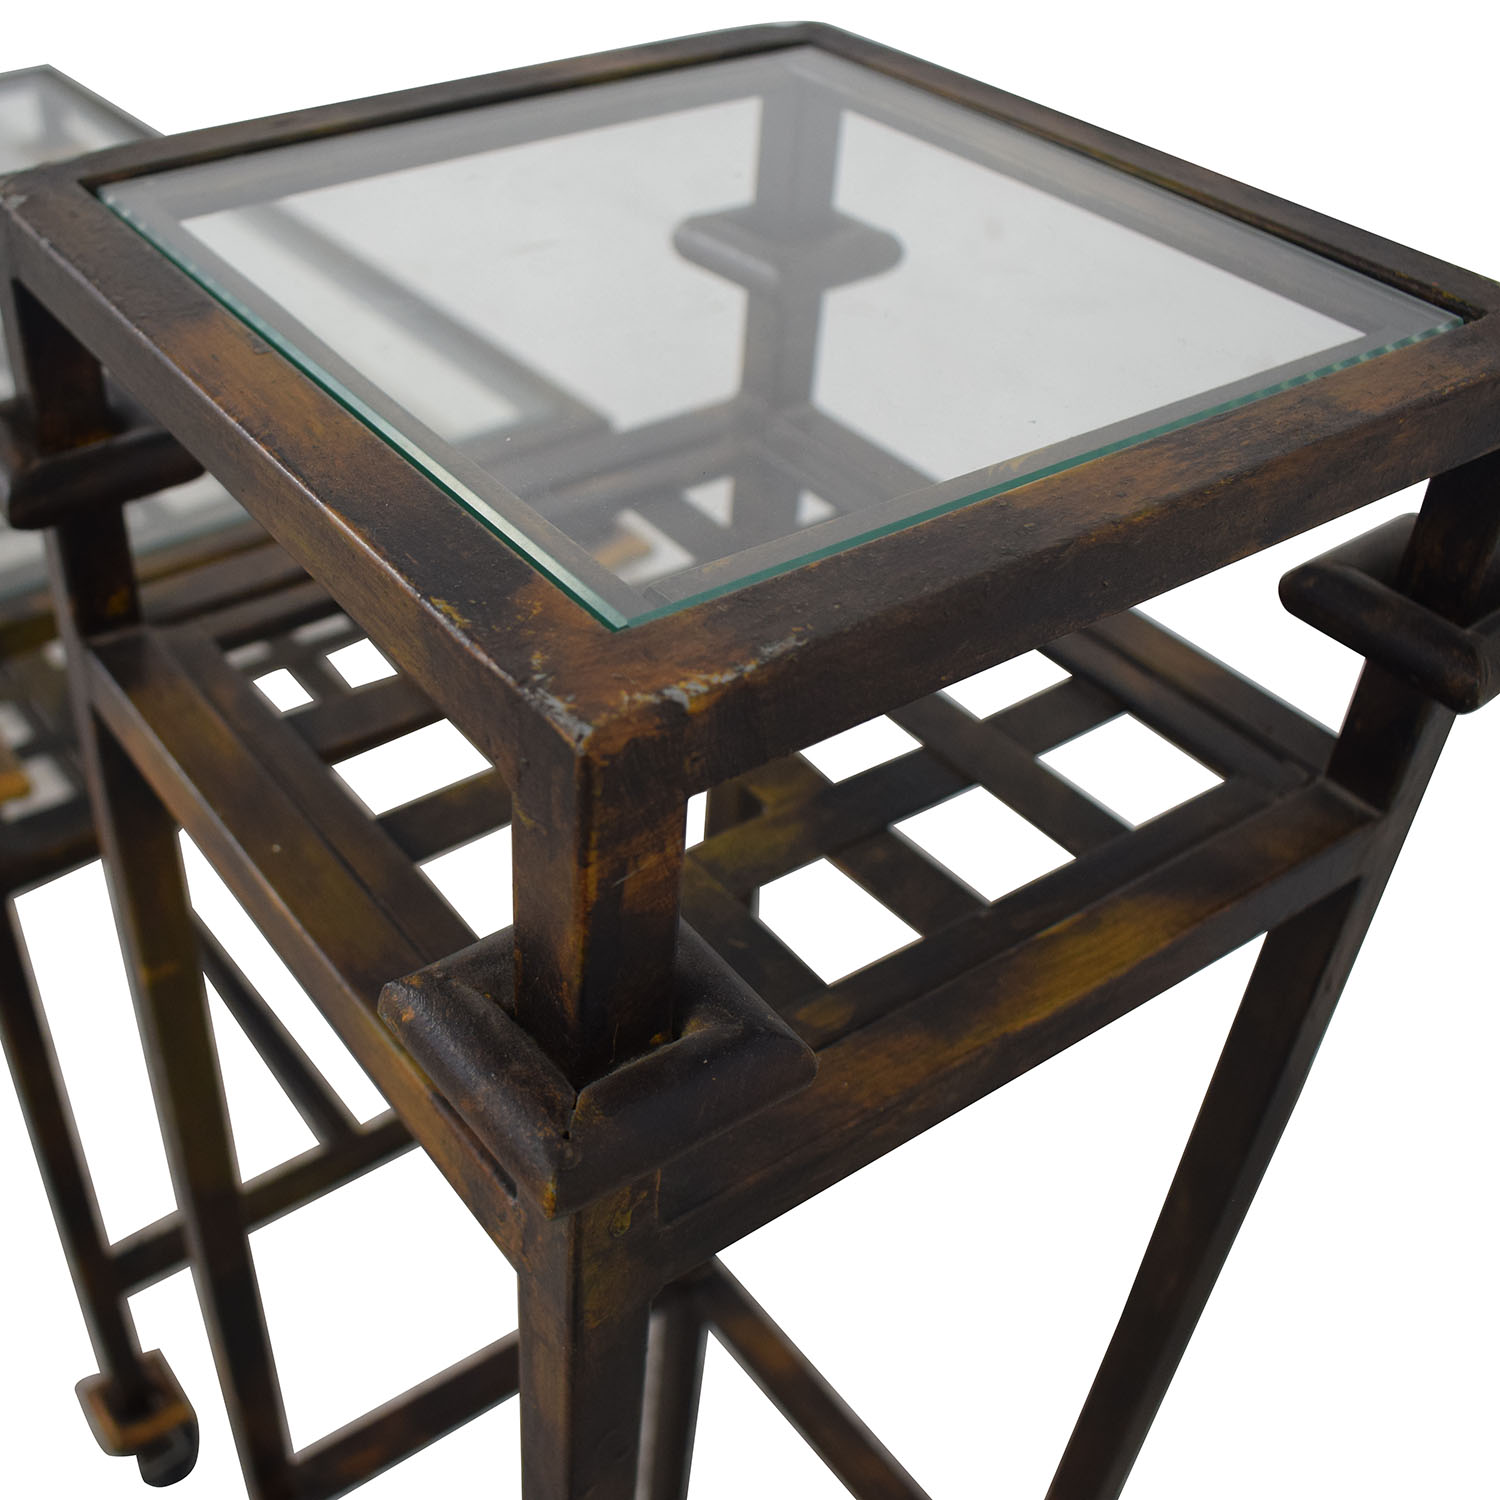 Rustic Glass Console with Matching End Tables dimensions